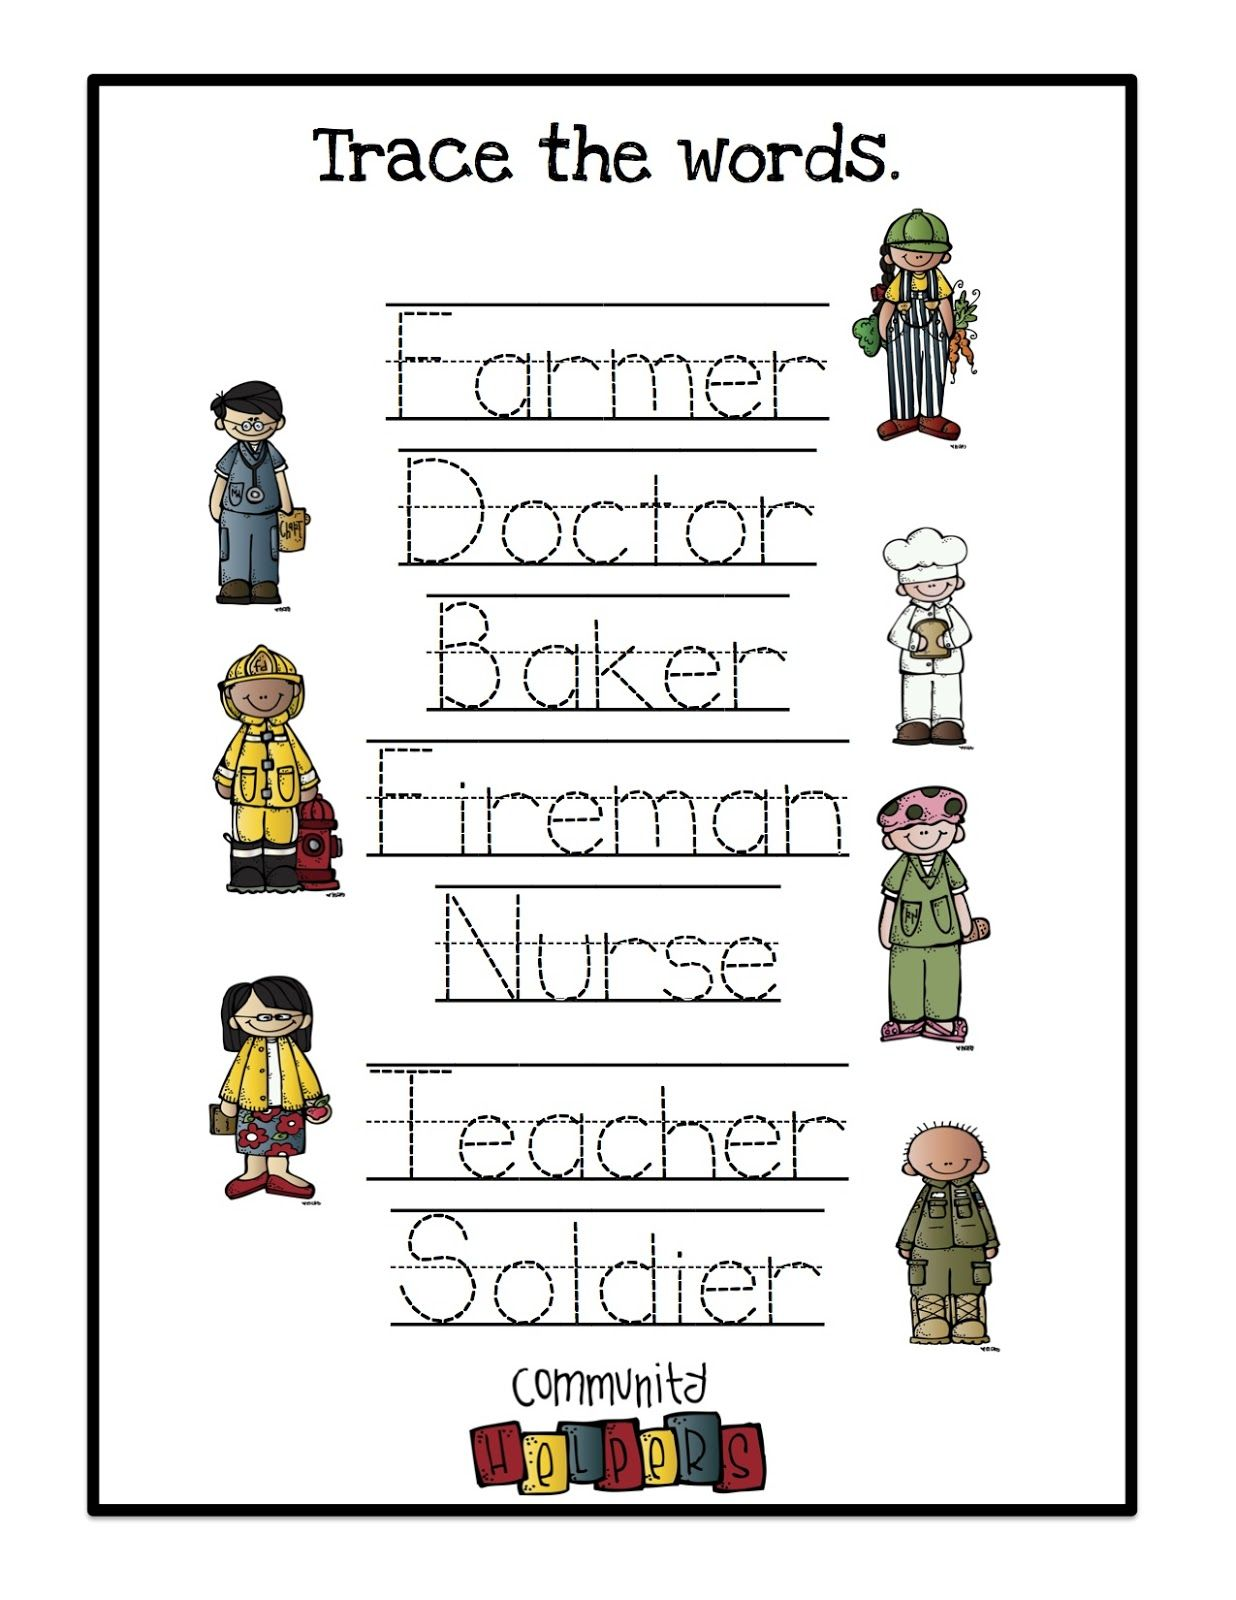 Community Helpers Printable 2 Preschool Printables